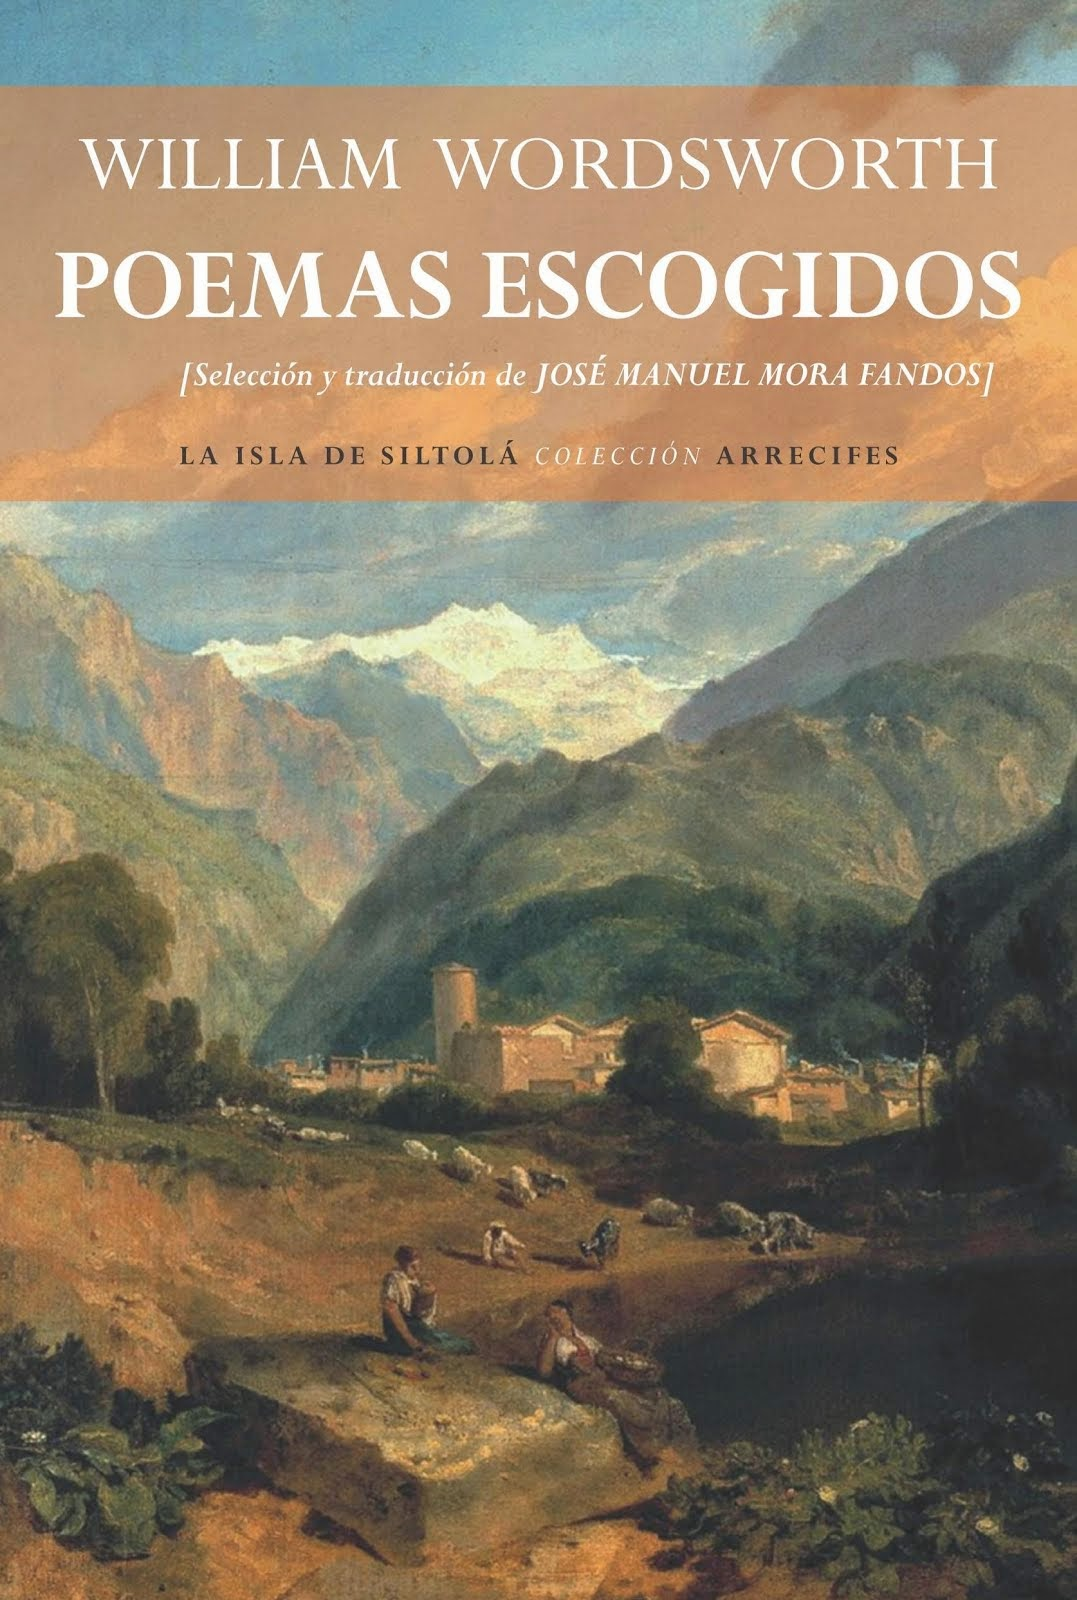 POEMAS ESCOGIDOS, DE WILLIAM WORDSWORTH (La Isla de Siltolá 2015)